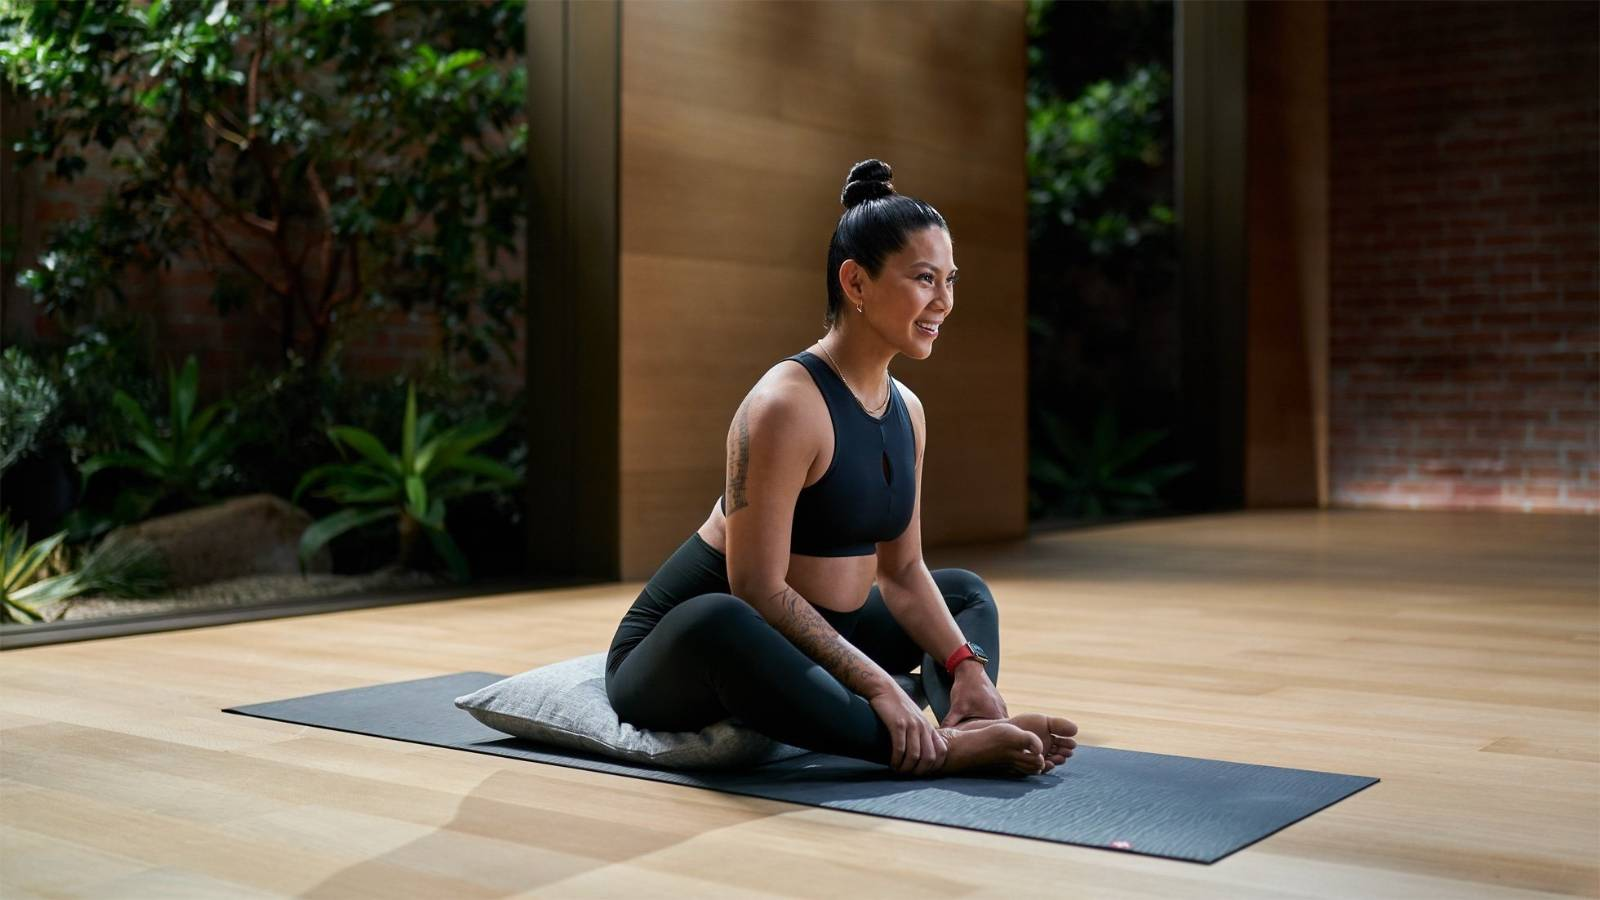 Apple expands Fitness+ with pregnancy and older adult workout programs